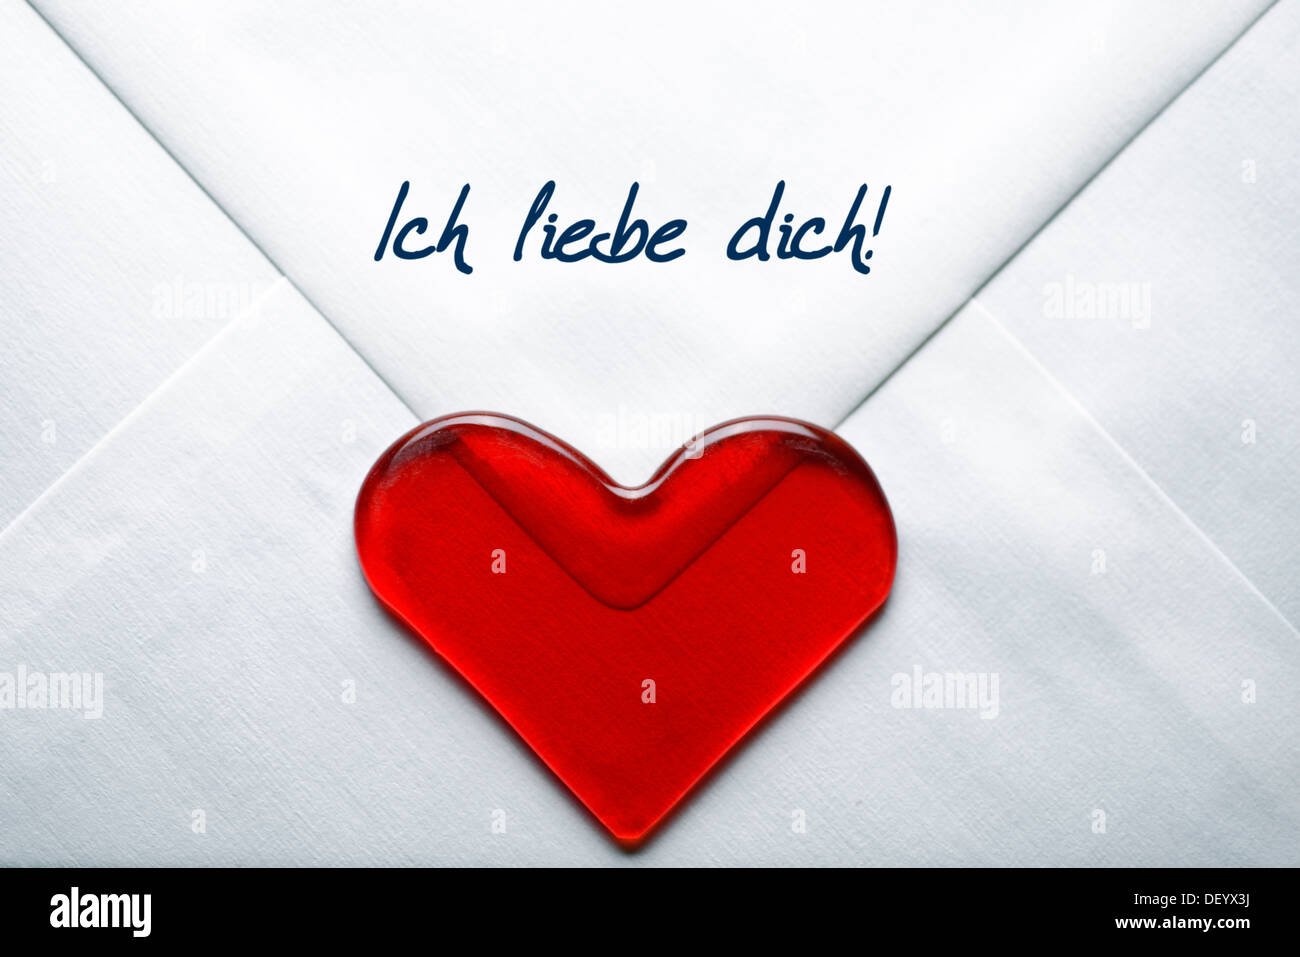 Love letter with a heart and the message 'Ich liebe dich', German for 'I love you', Germany - Stock Image